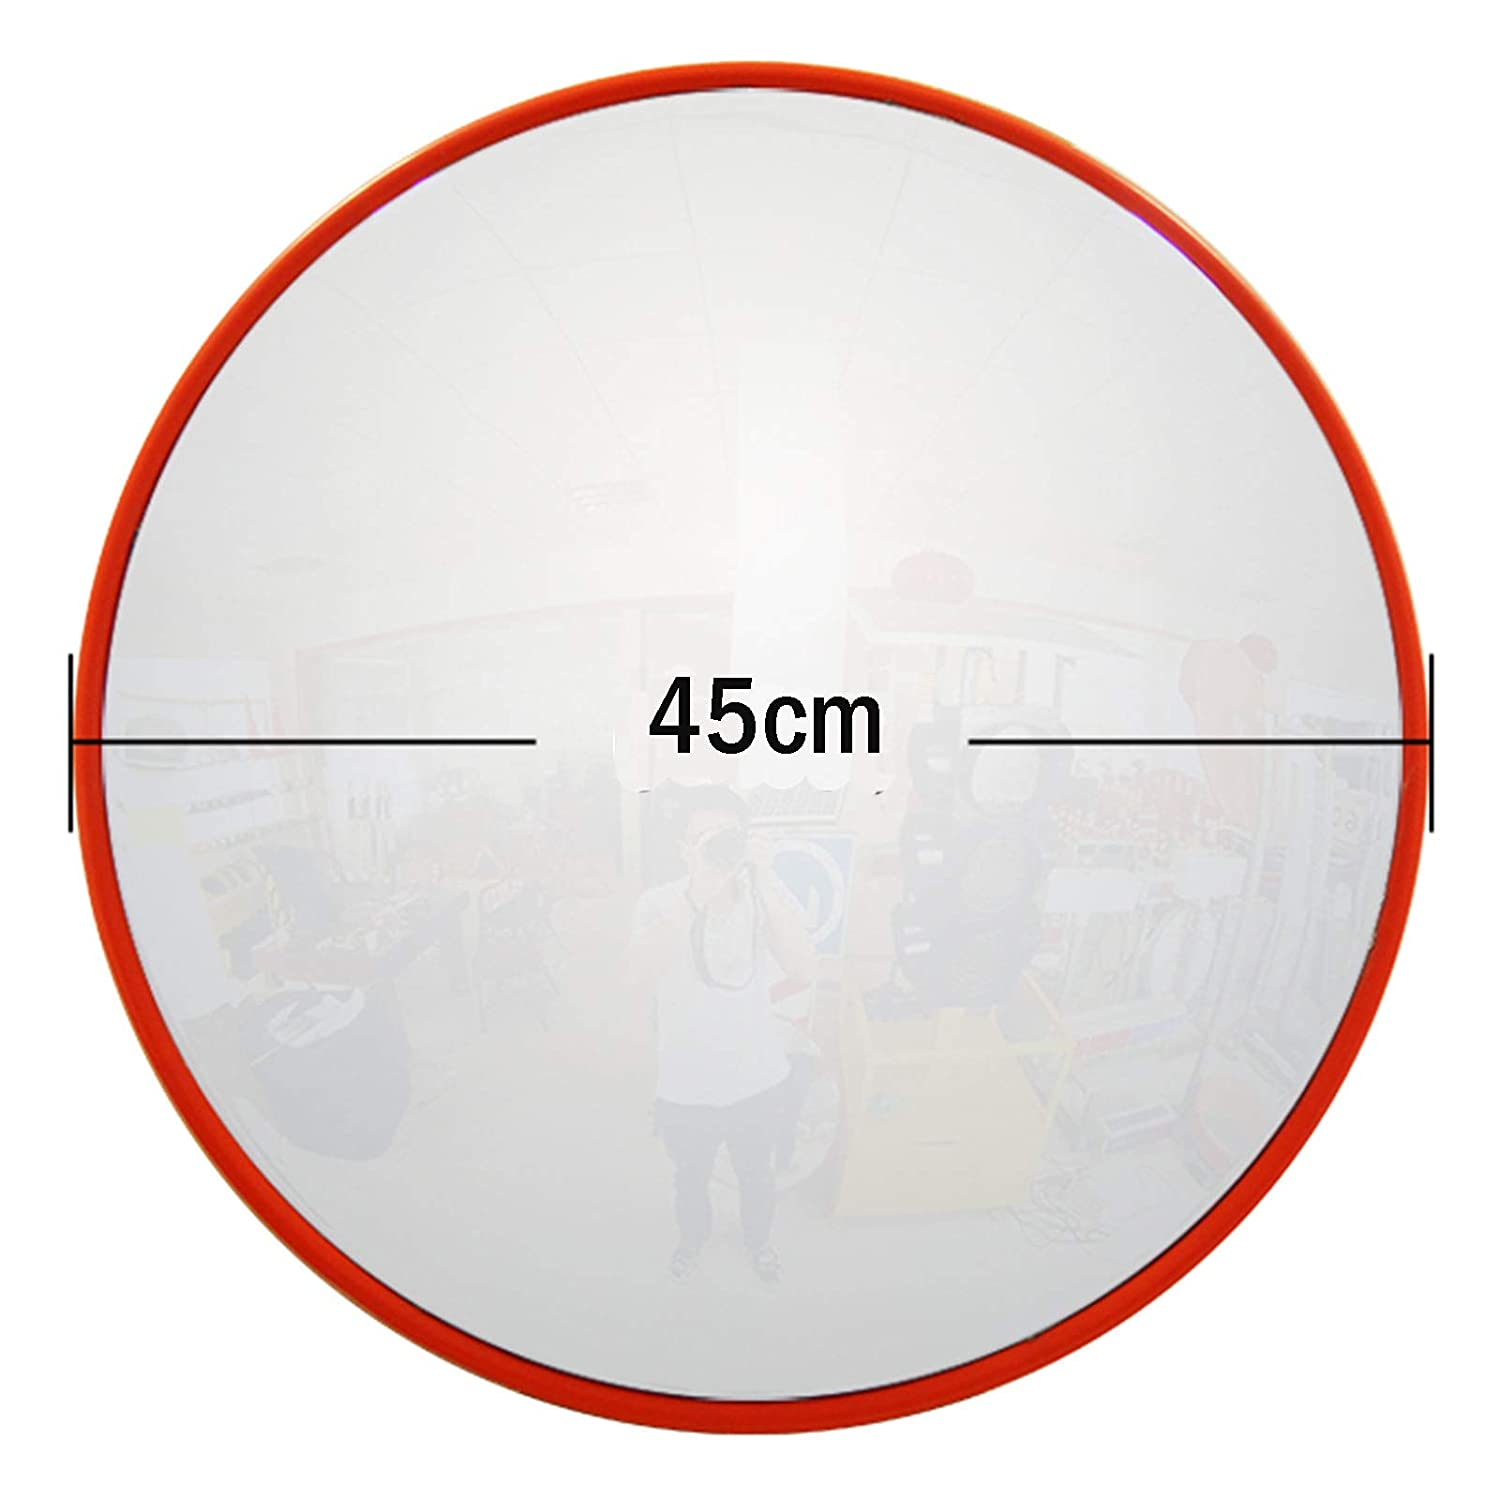 Convex Unbreakable Traffic Mirror For Driveway 130 Degree Wide Angle Blind Spot Mirror Security Mirror For Road Safety//Garage//Parking//Shop Security//Home Driveway//Alley//Car Park//Hospital//School 30CM